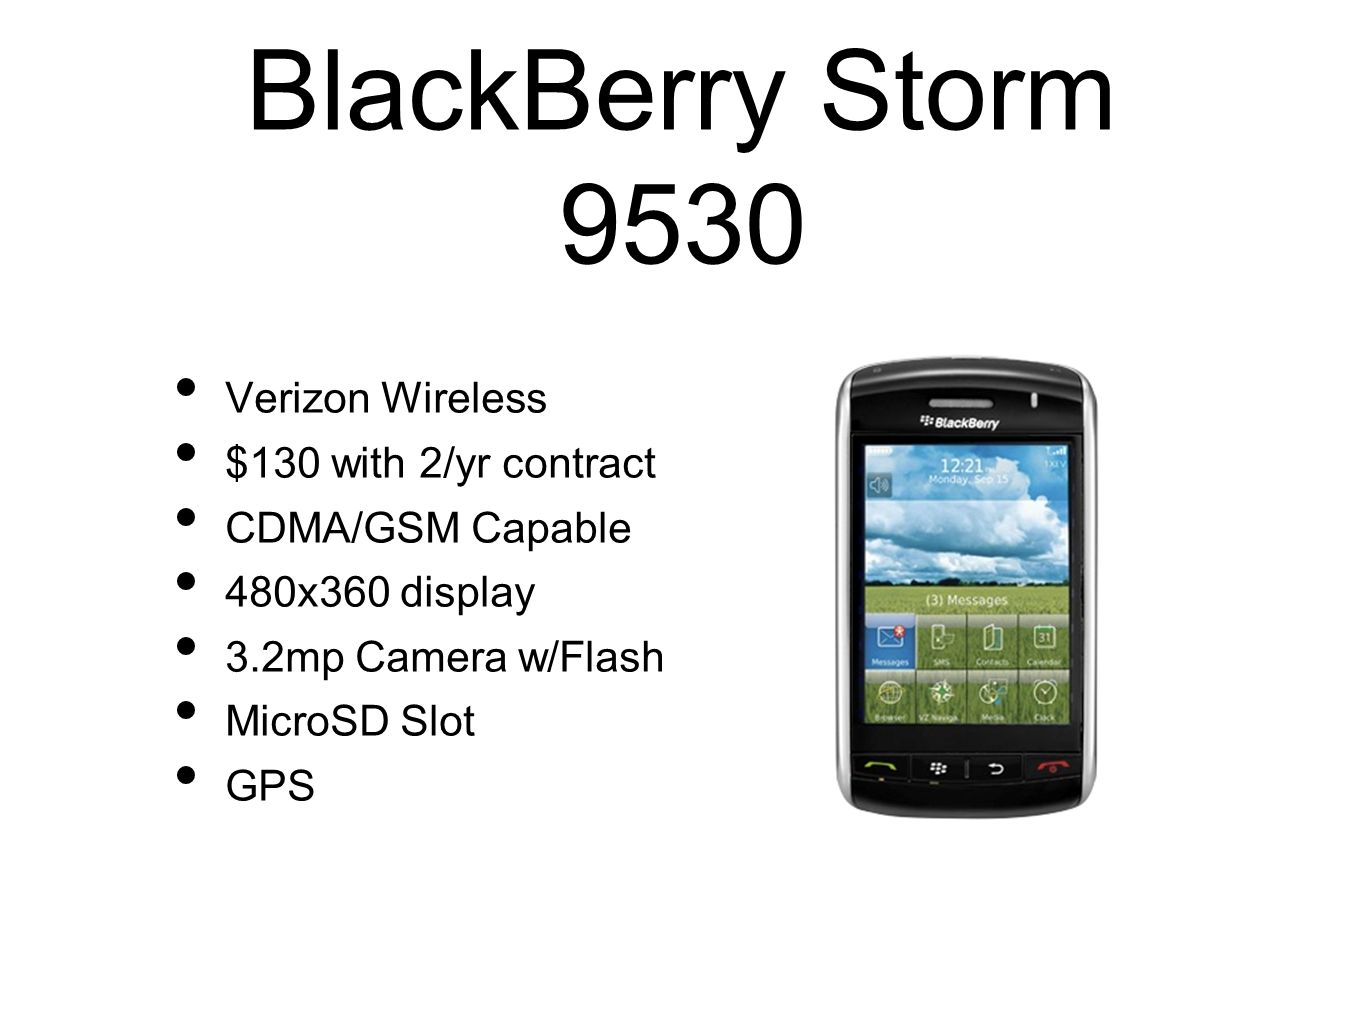 BlackBerry Storm 9530 Verizon Wireless $130 with 2/yr contract